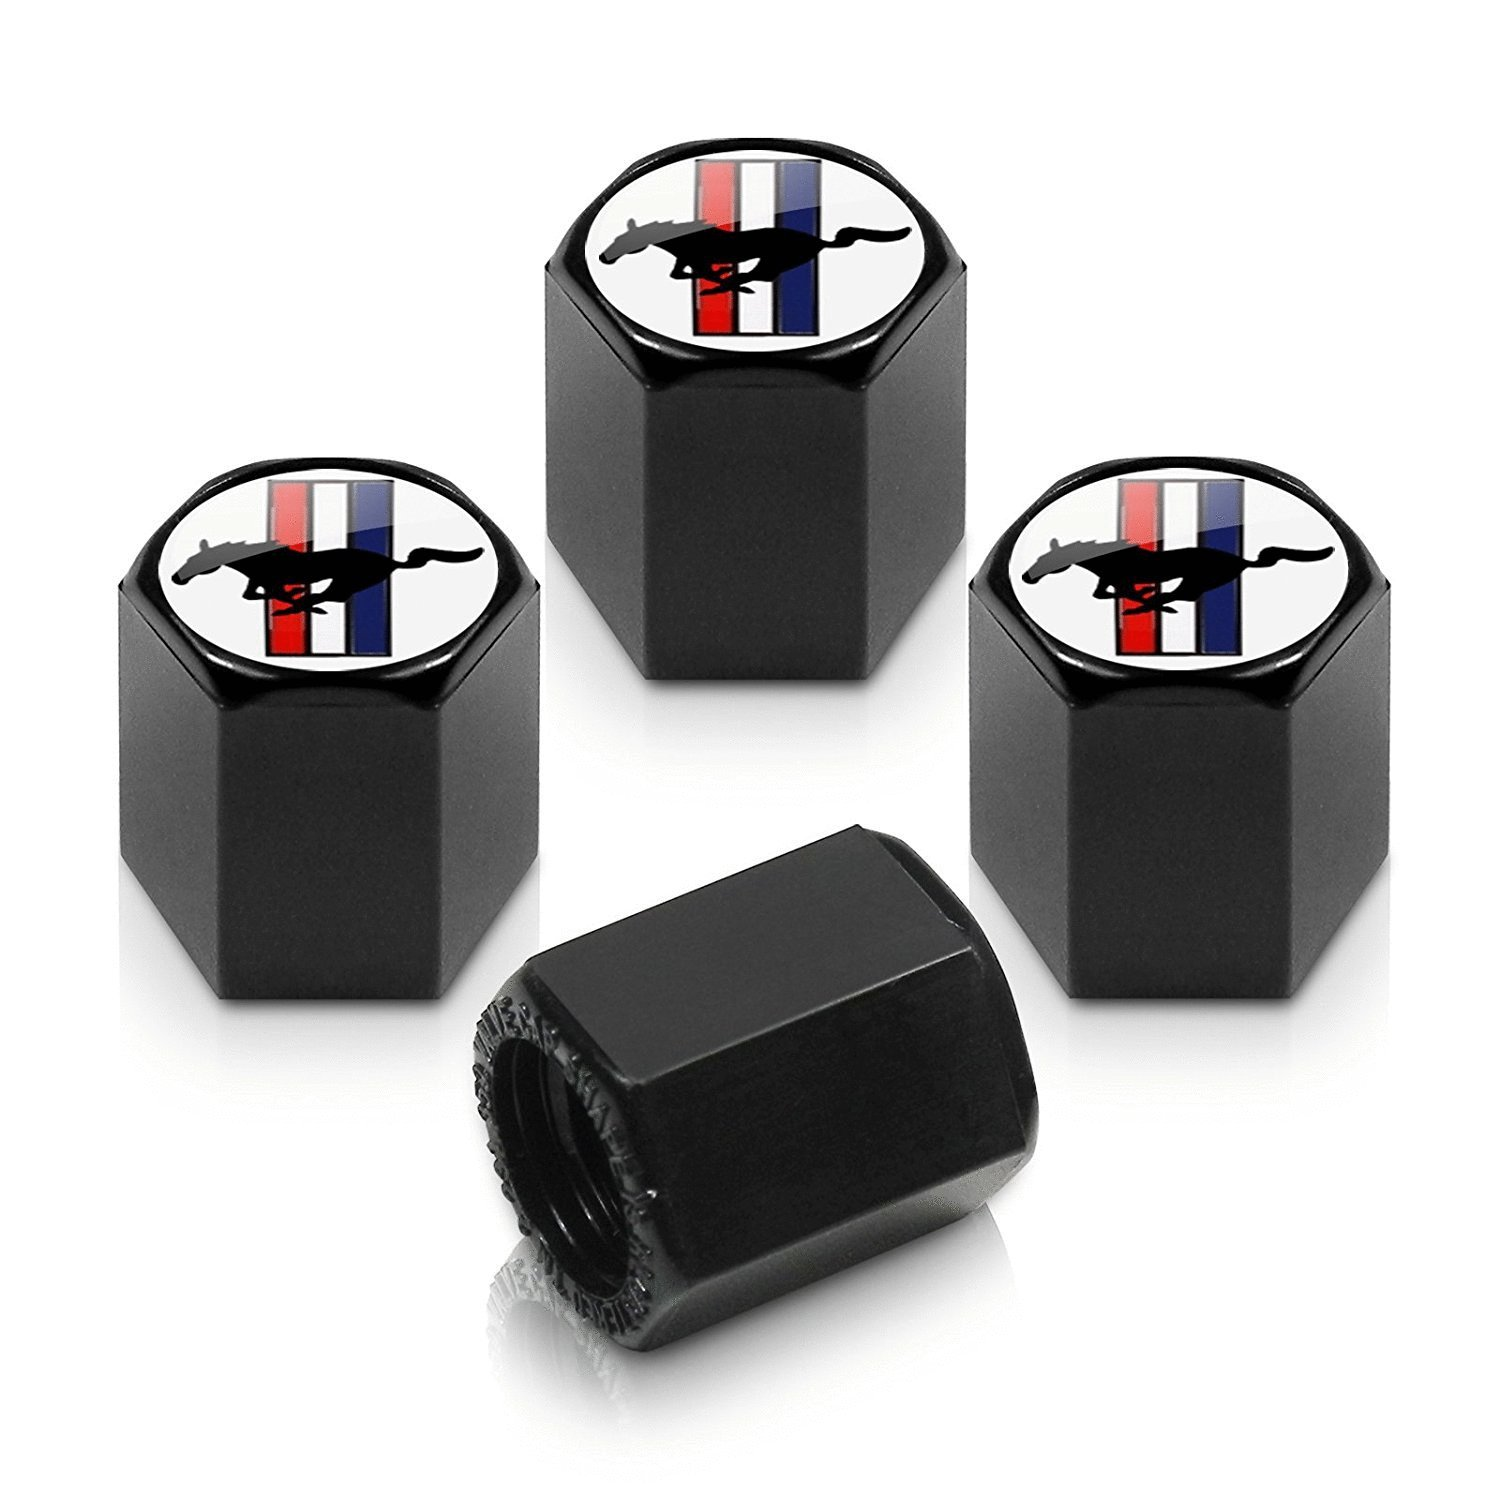 4pcs Ford Mustang Logo Black Tire Stem Valve Caps Accessories Car Products Compatible Fit For USA Auto Model Ford Mustang